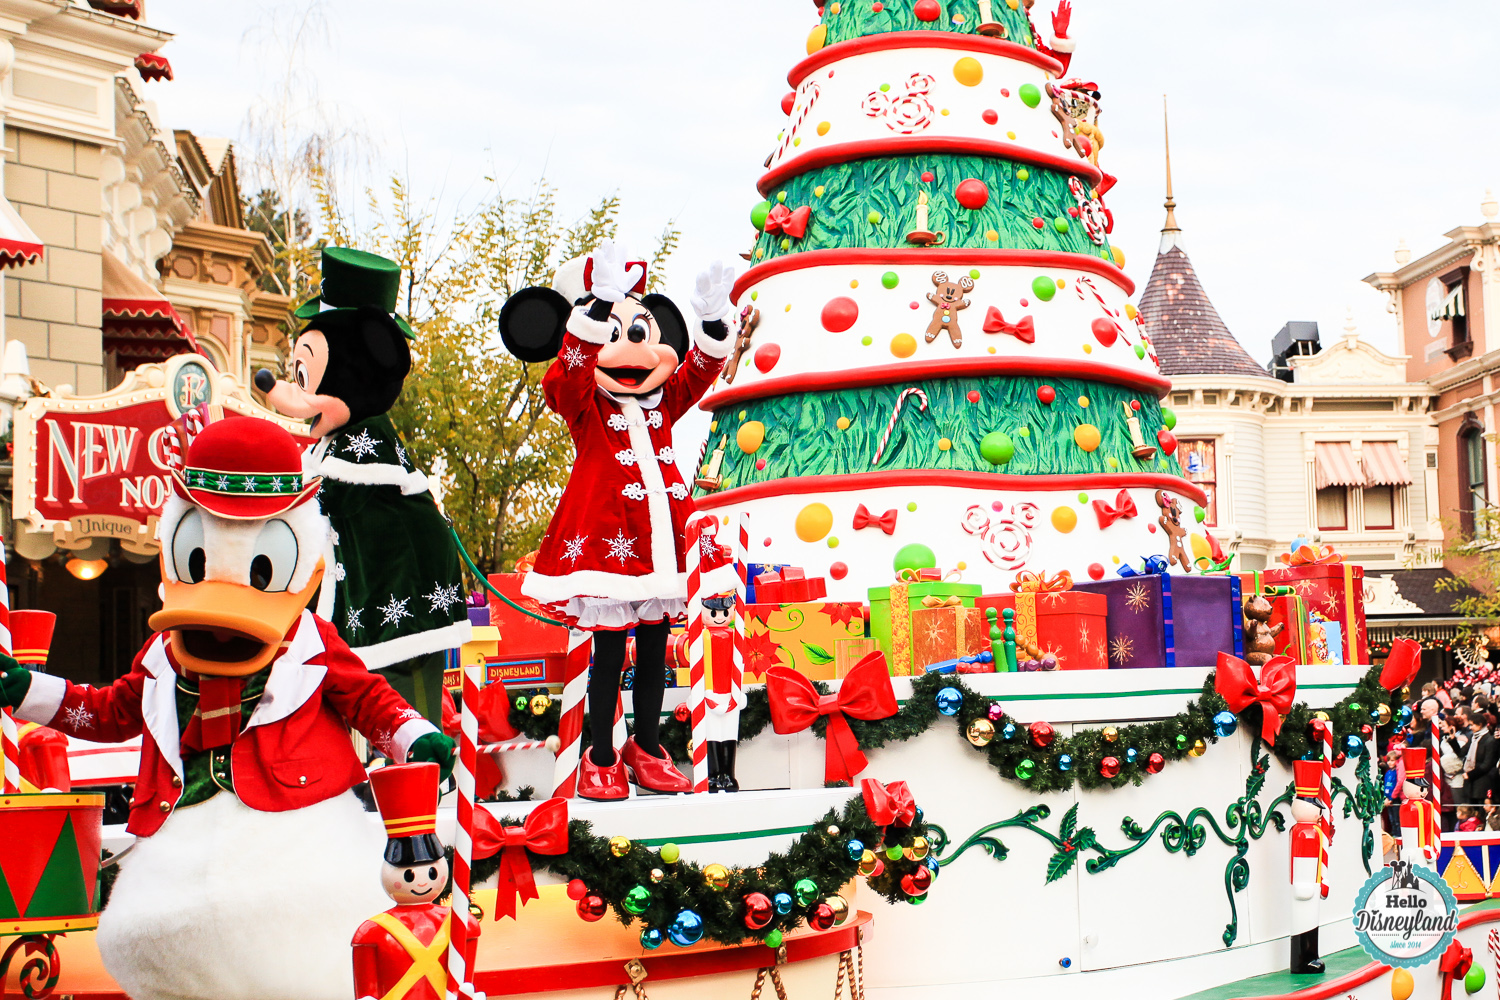 Le Noël Enchanté 2015 de Disneyland Paris | Hello Disneyland : Le ...